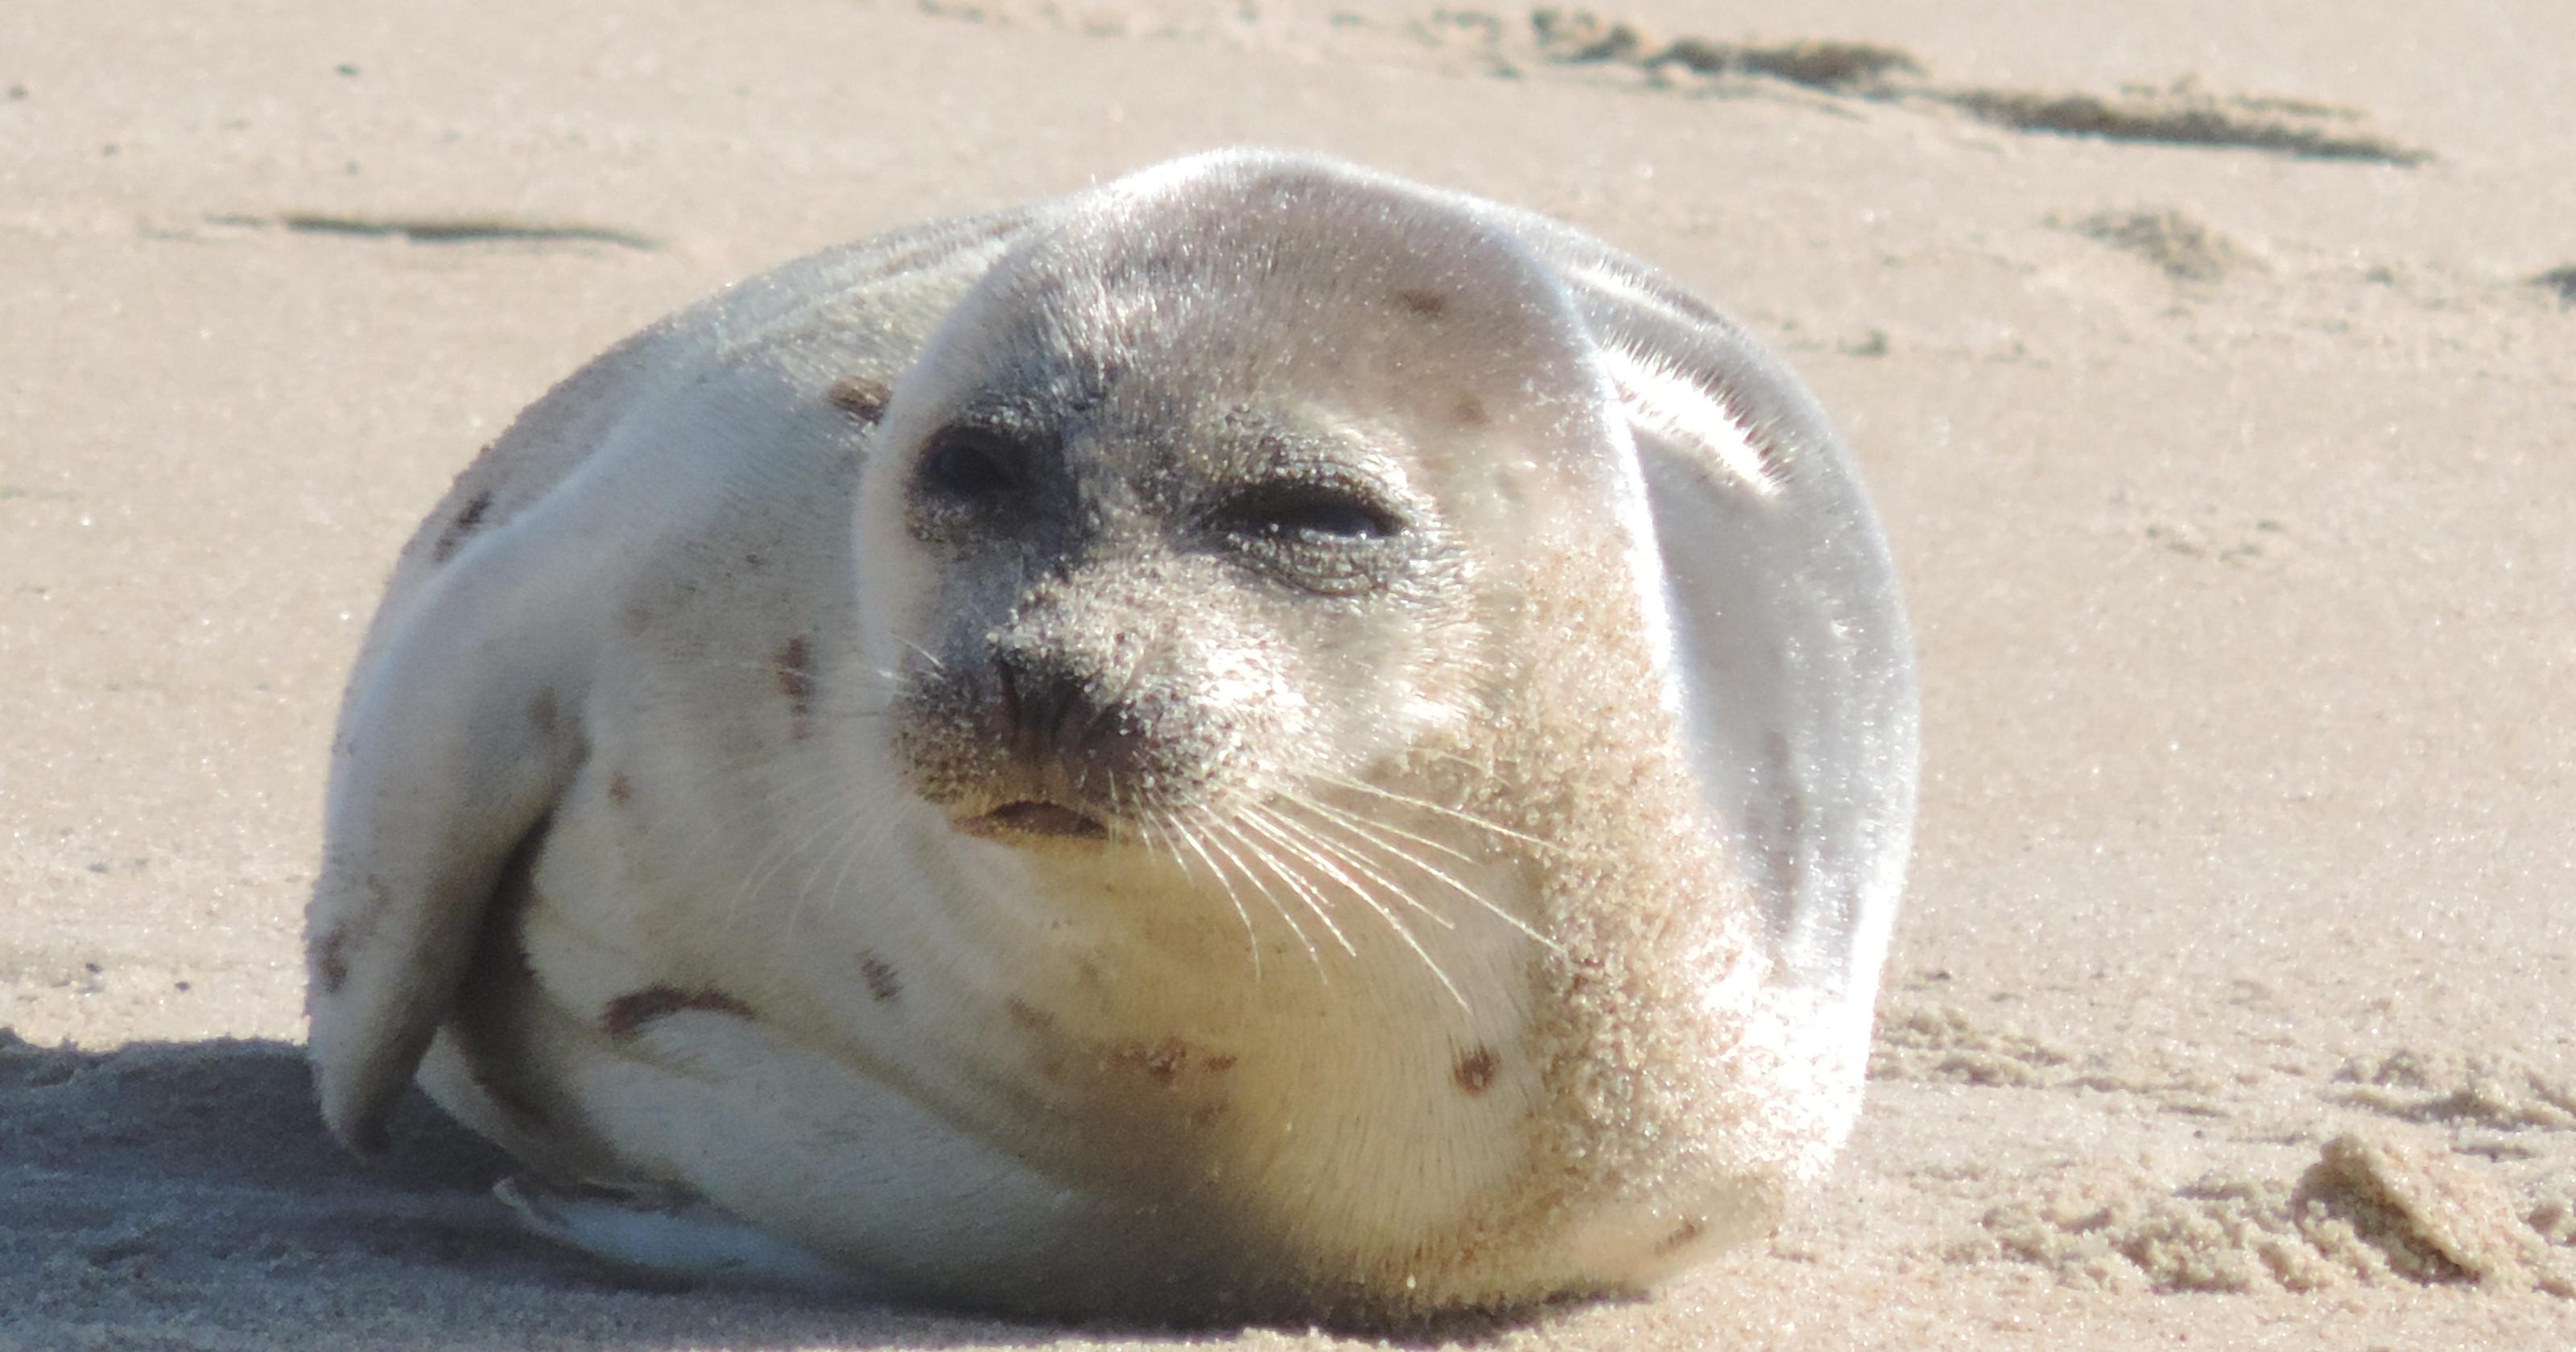 Seals may look cuddly, but never pet or feed them